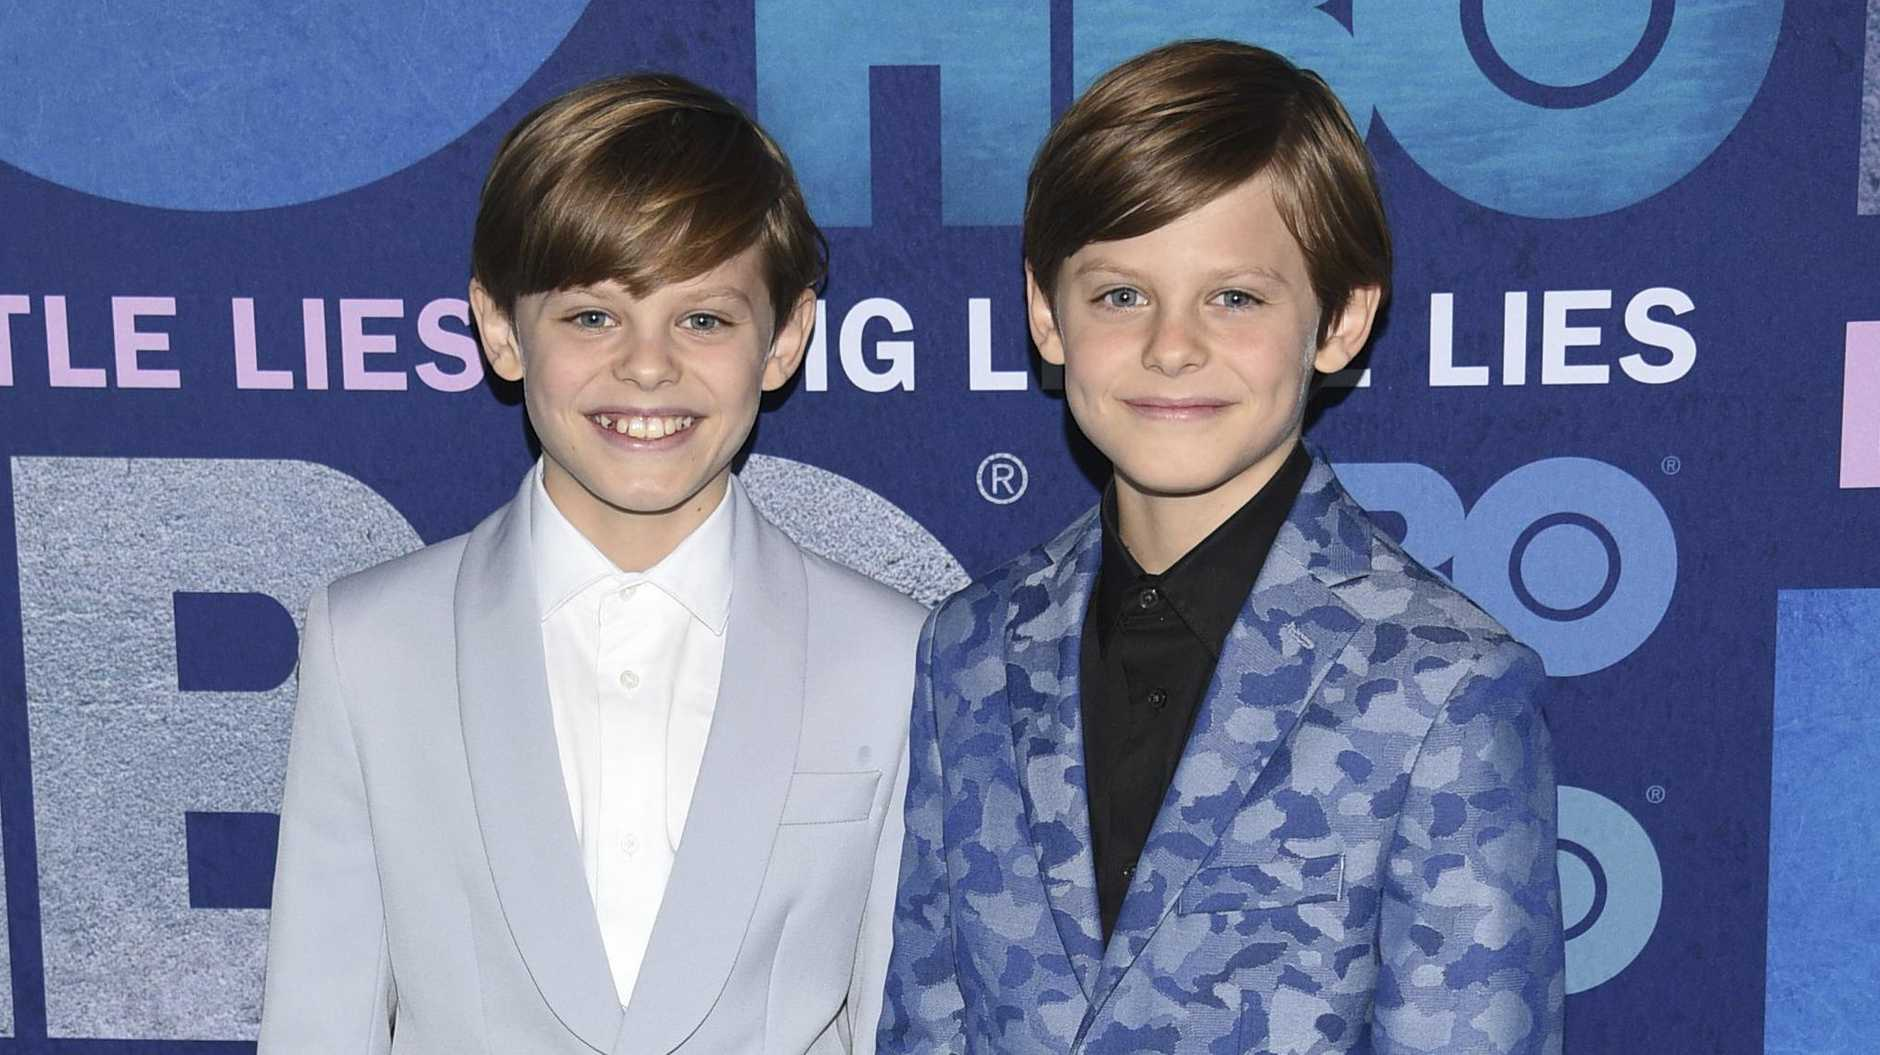 Nicholas Crovetti, left, and Cameron Crovetti attend the premiere of HBO's Big Little Lies season two in New York.